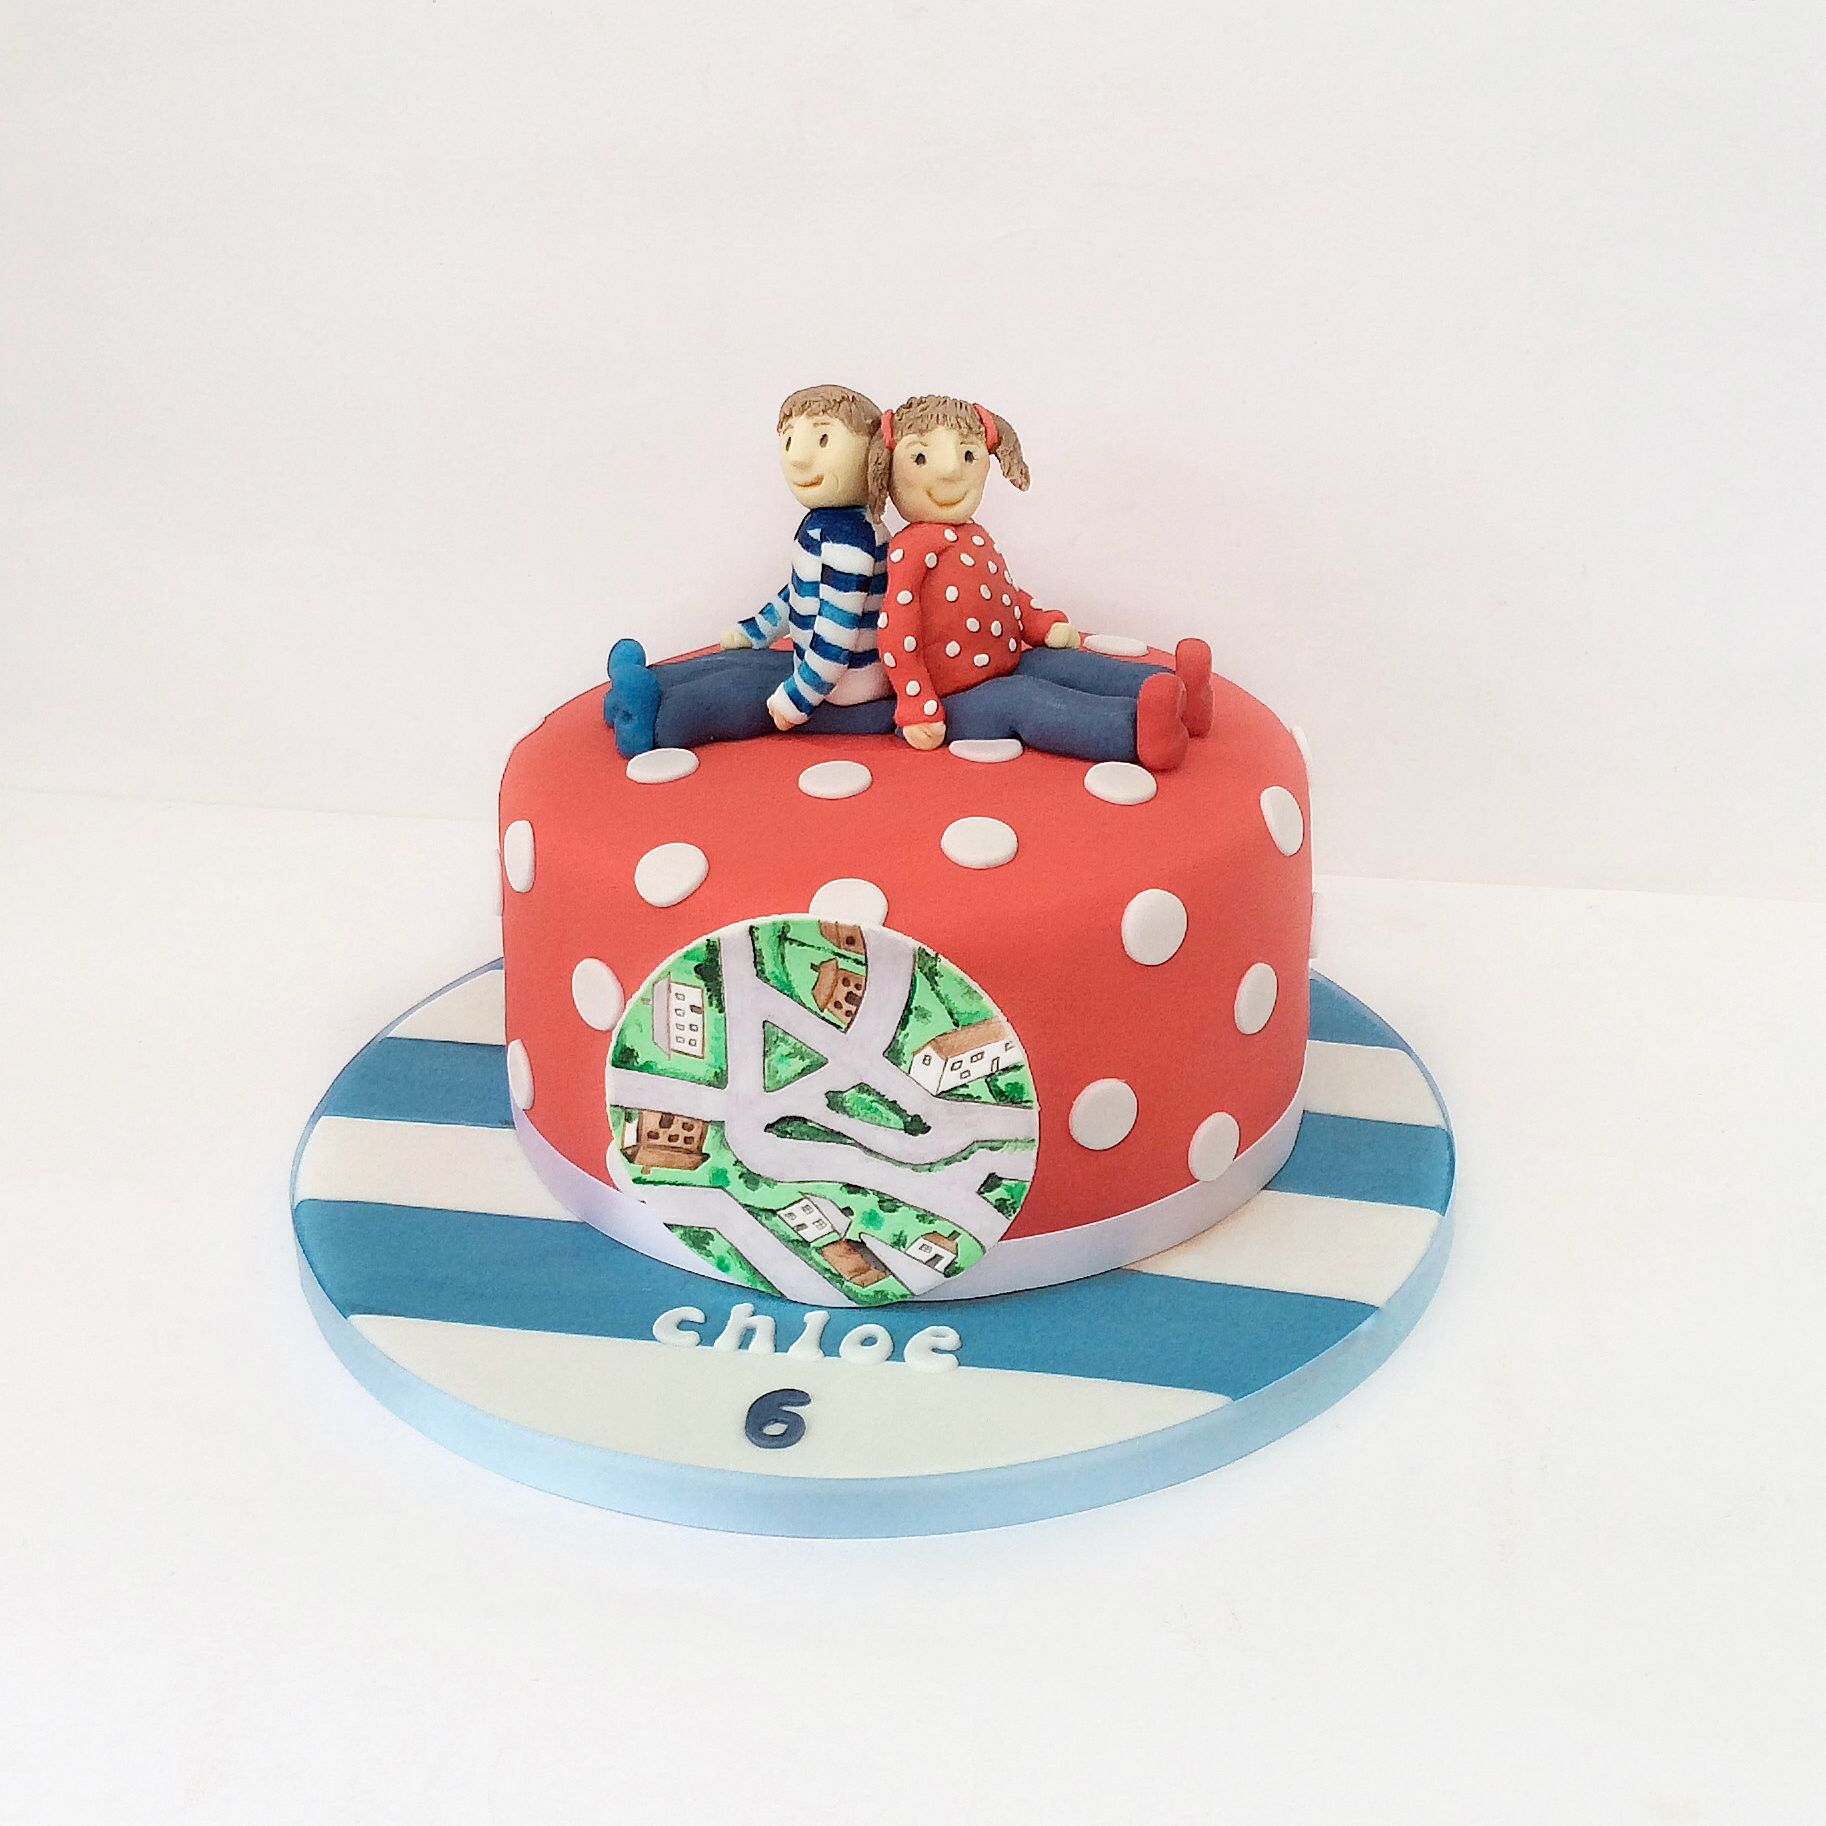 Topsy And Tim Cake Averys 2nd Bday Pinterest Cake And